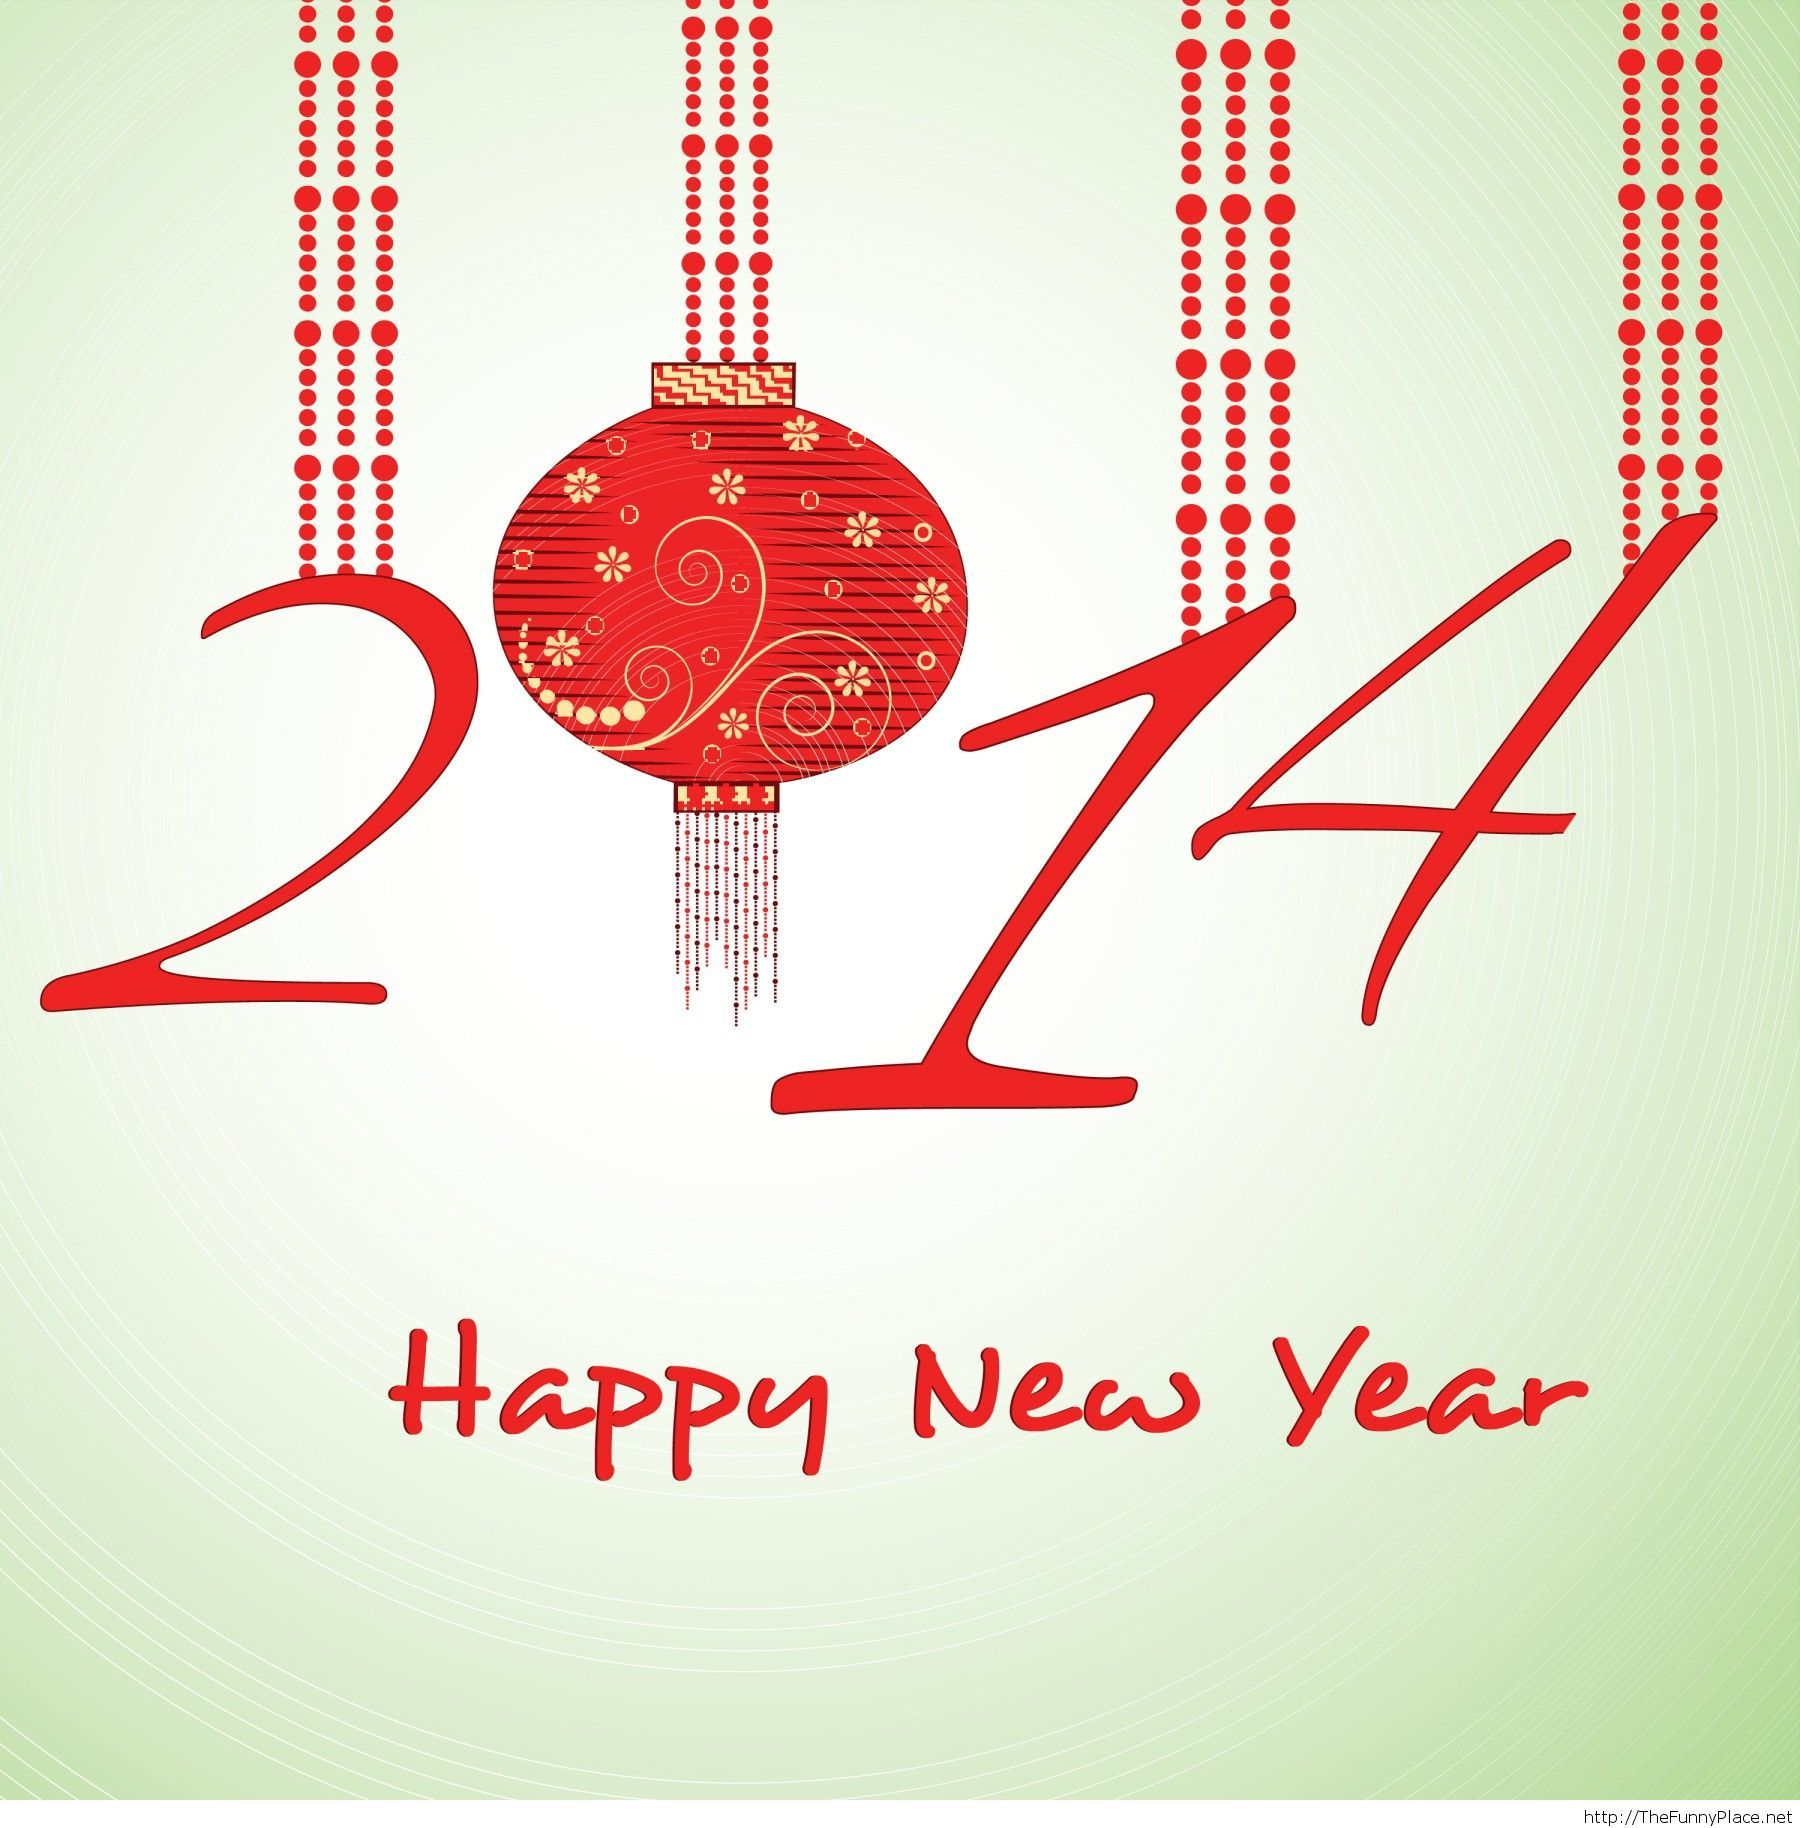 Happy 2014 new year